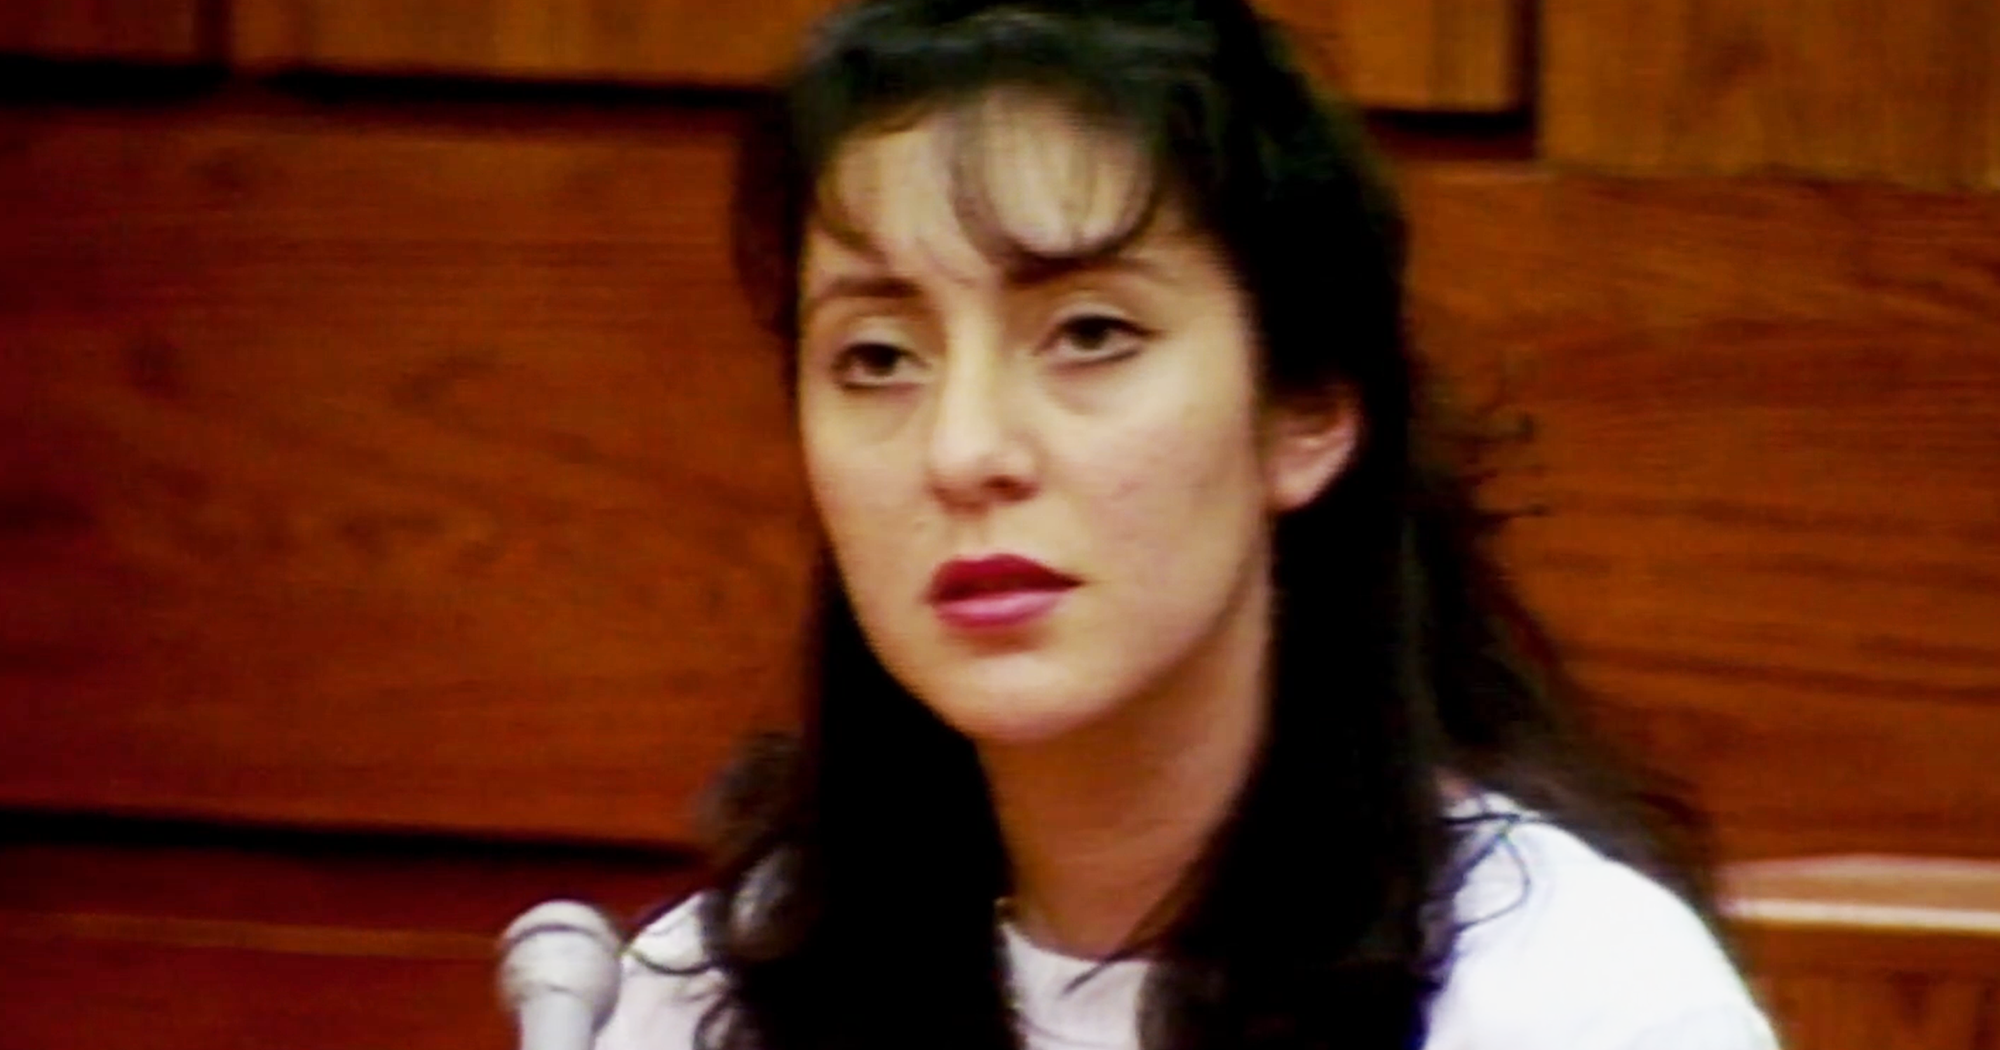 Lorena Bobbitt Cut Off Her Husband's Penis. Here's Why She Was Acquitted